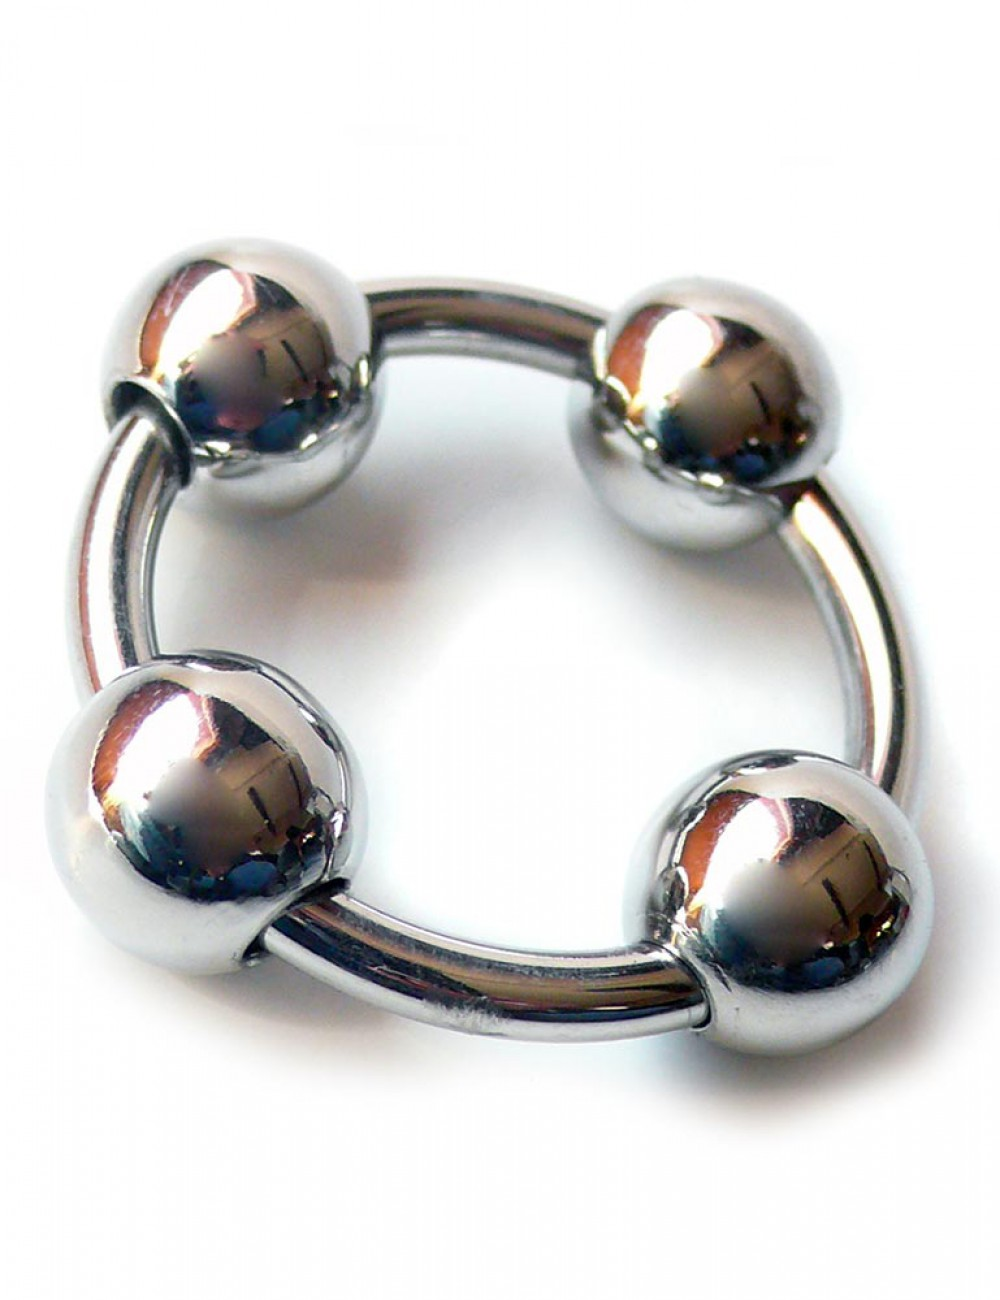 Orbital Head Ring